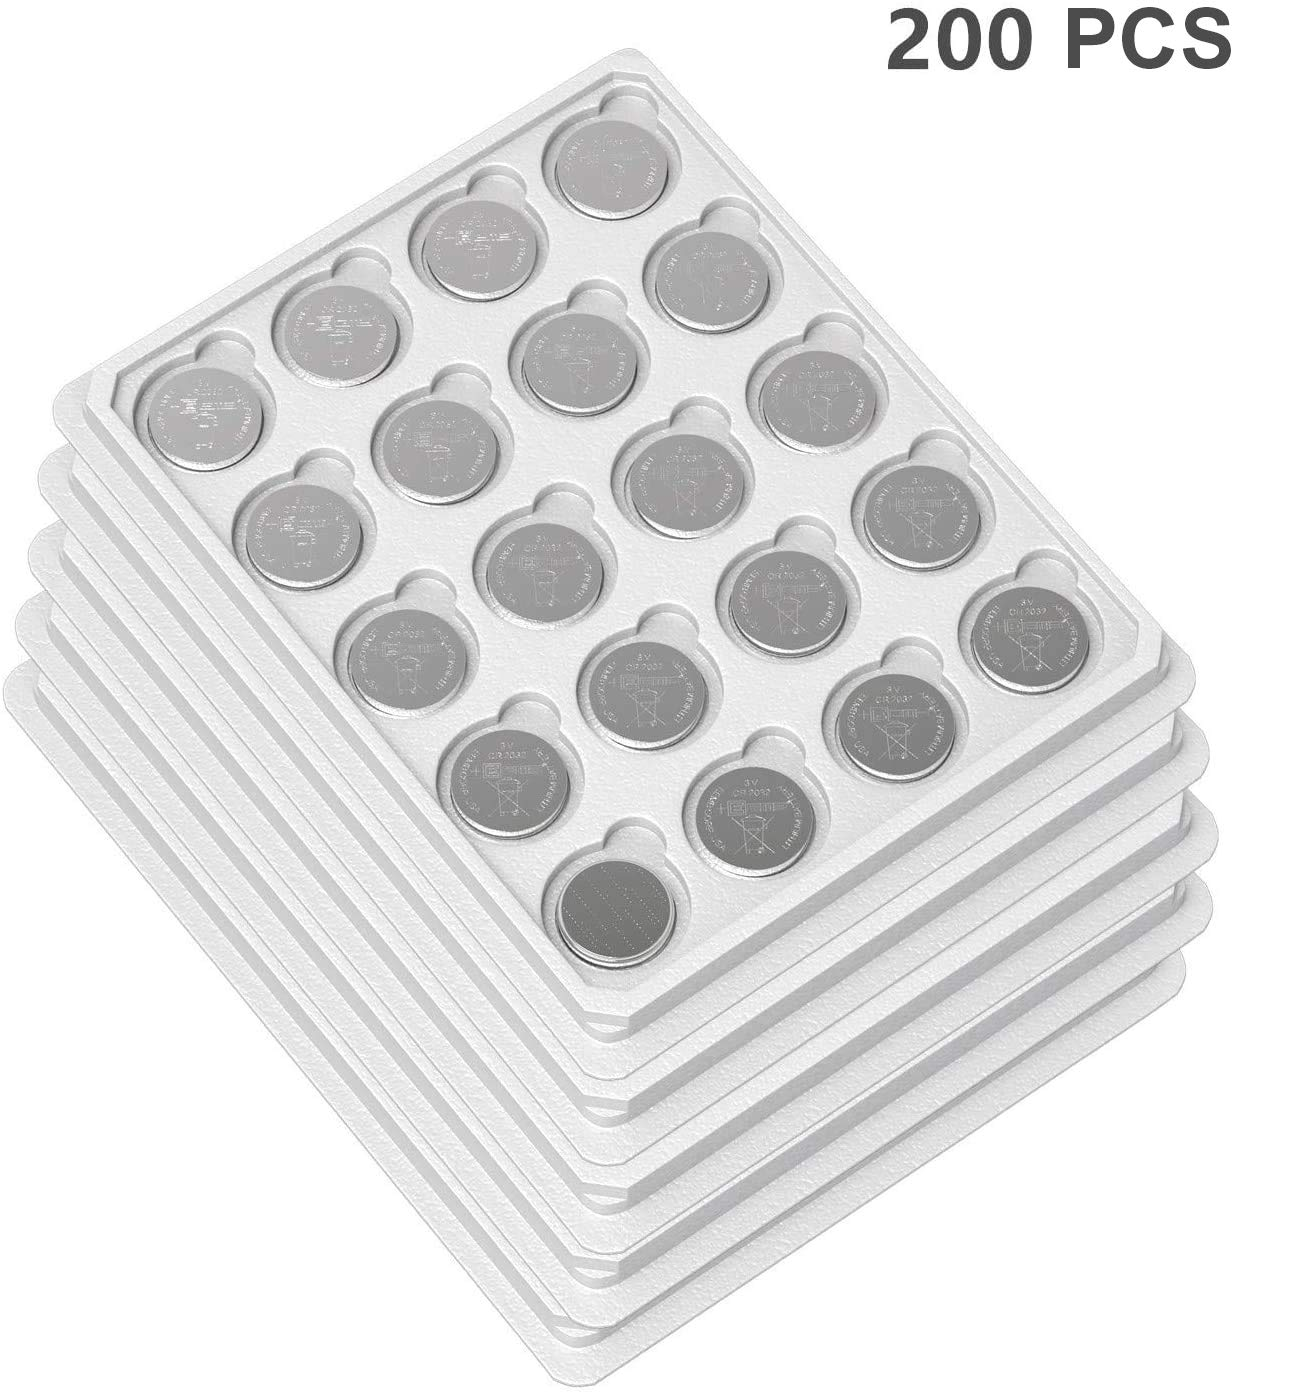 EEMB CR2032 Battery- Button Coin Cell Lithium Battery 3 V 210 mAh Replacement Battery Perfect UL Certified for Watches, Car Key Remotes, Alarm Clock Toys (200PCS)